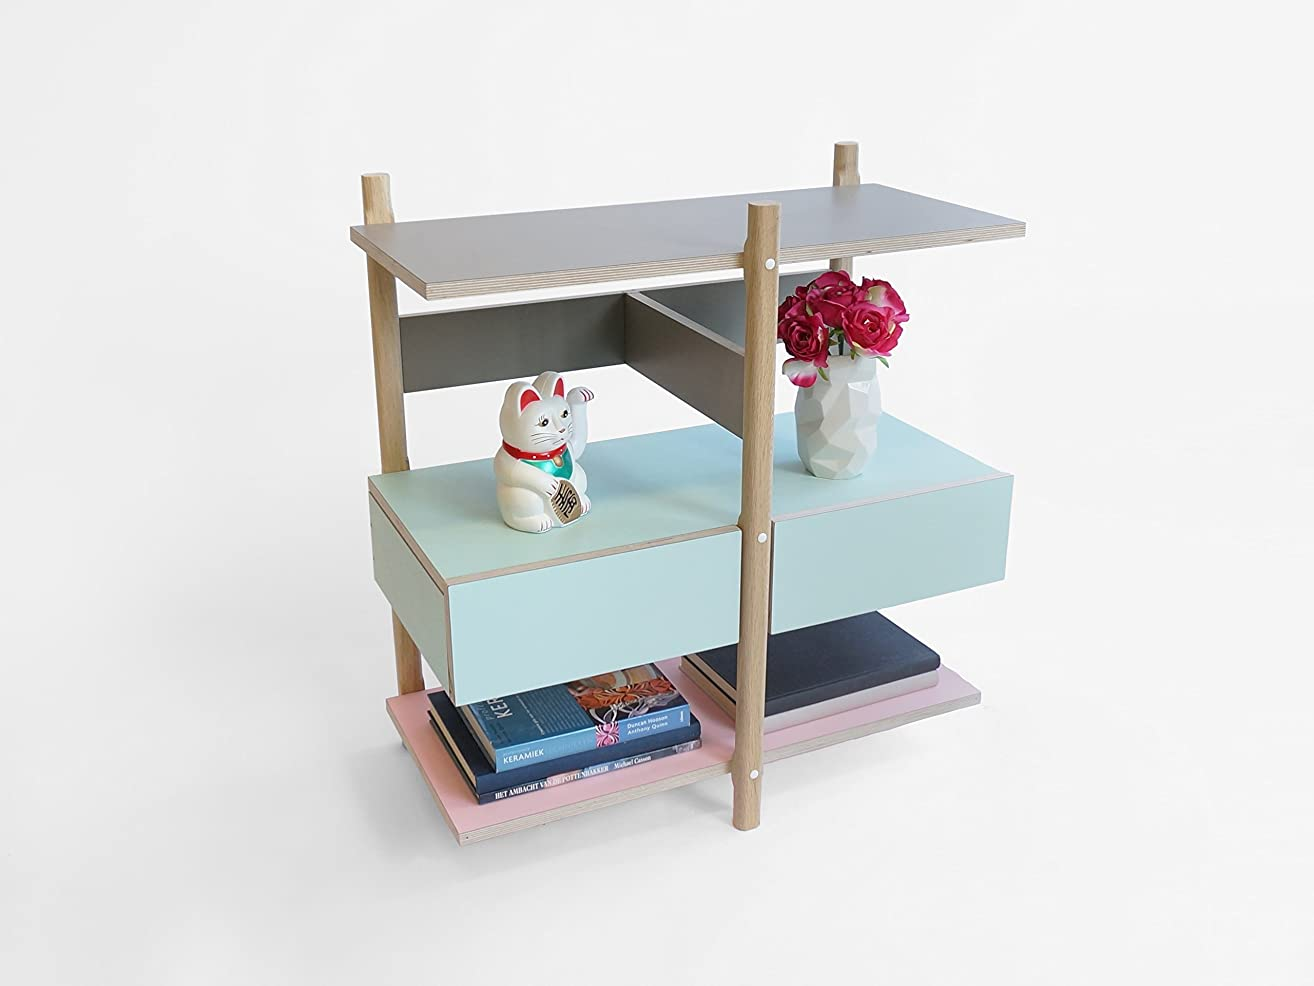 Stack Drawer Shelf - unit bed-side drawers bed-room small side storage shelving furniture table rack-ing space saving wooden wine cabinet shelves